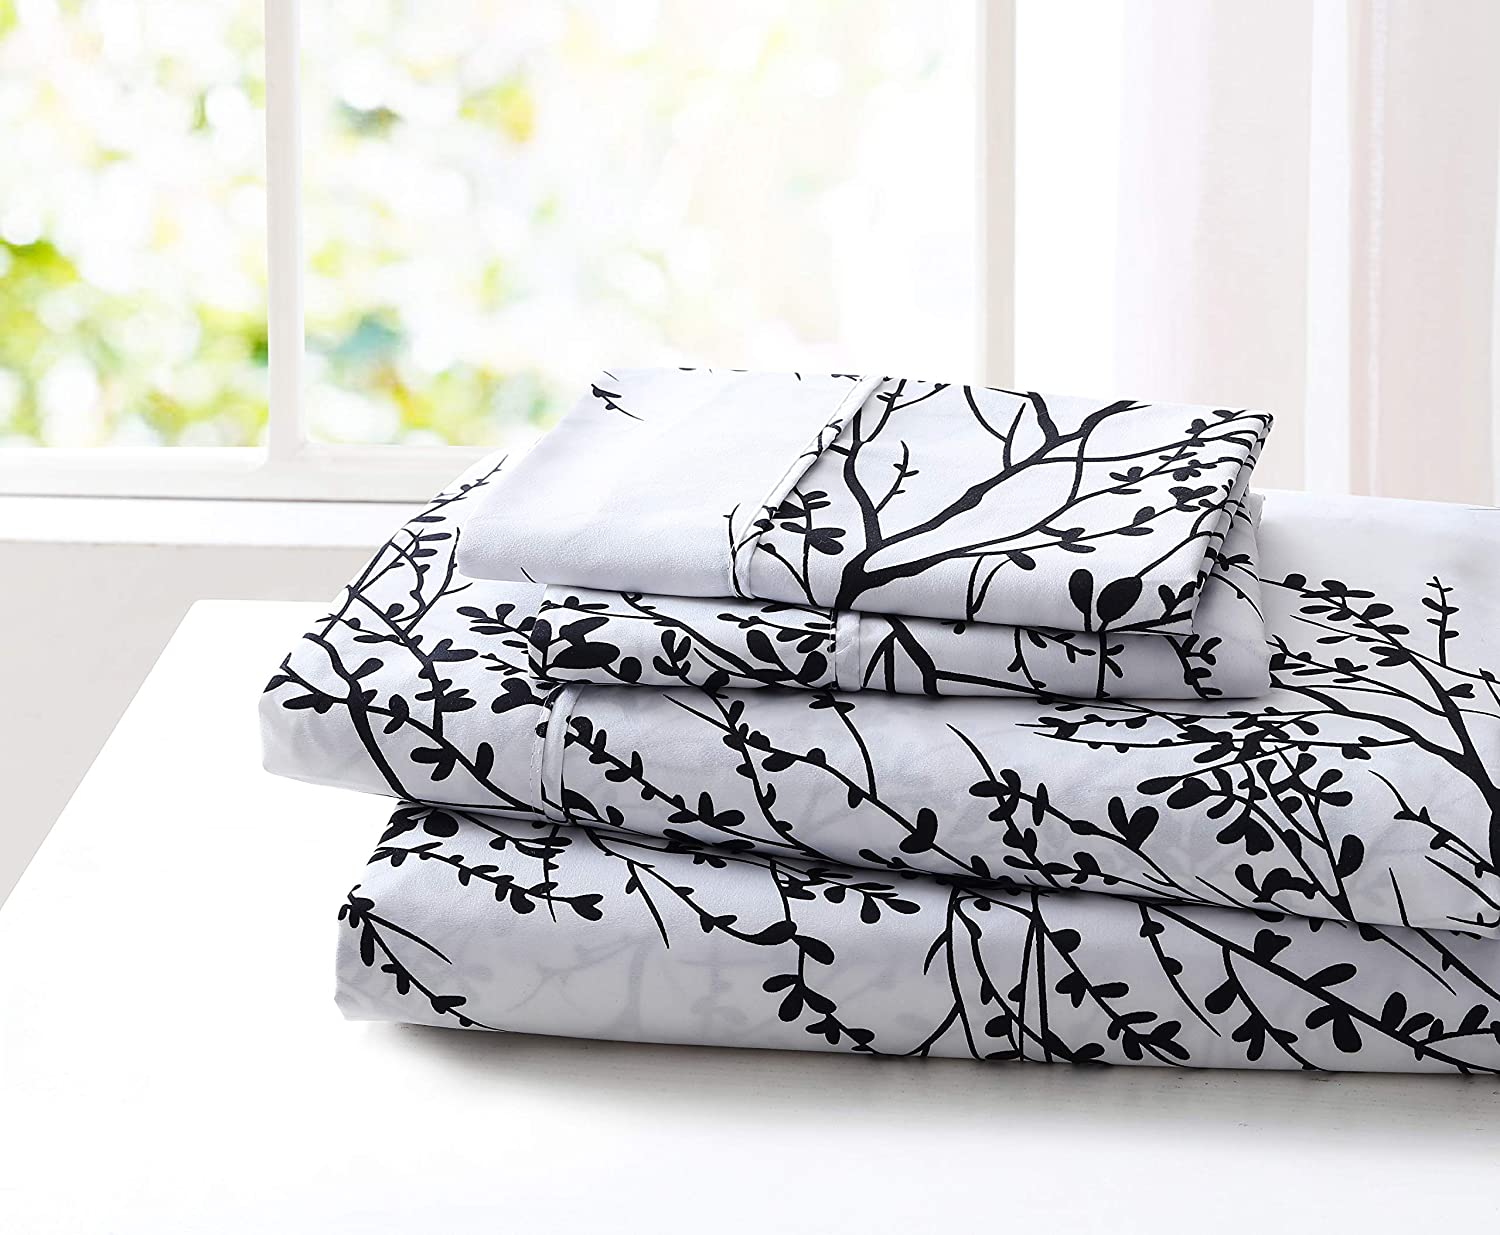 SL Spirit Linen Home EST. 1988 Foliage Collection Bed Sheet Set- Ultra Soft, Lightweight & Breathable Fabrics, Double Brushed Microfiber for Added Softness, Queen, White Black